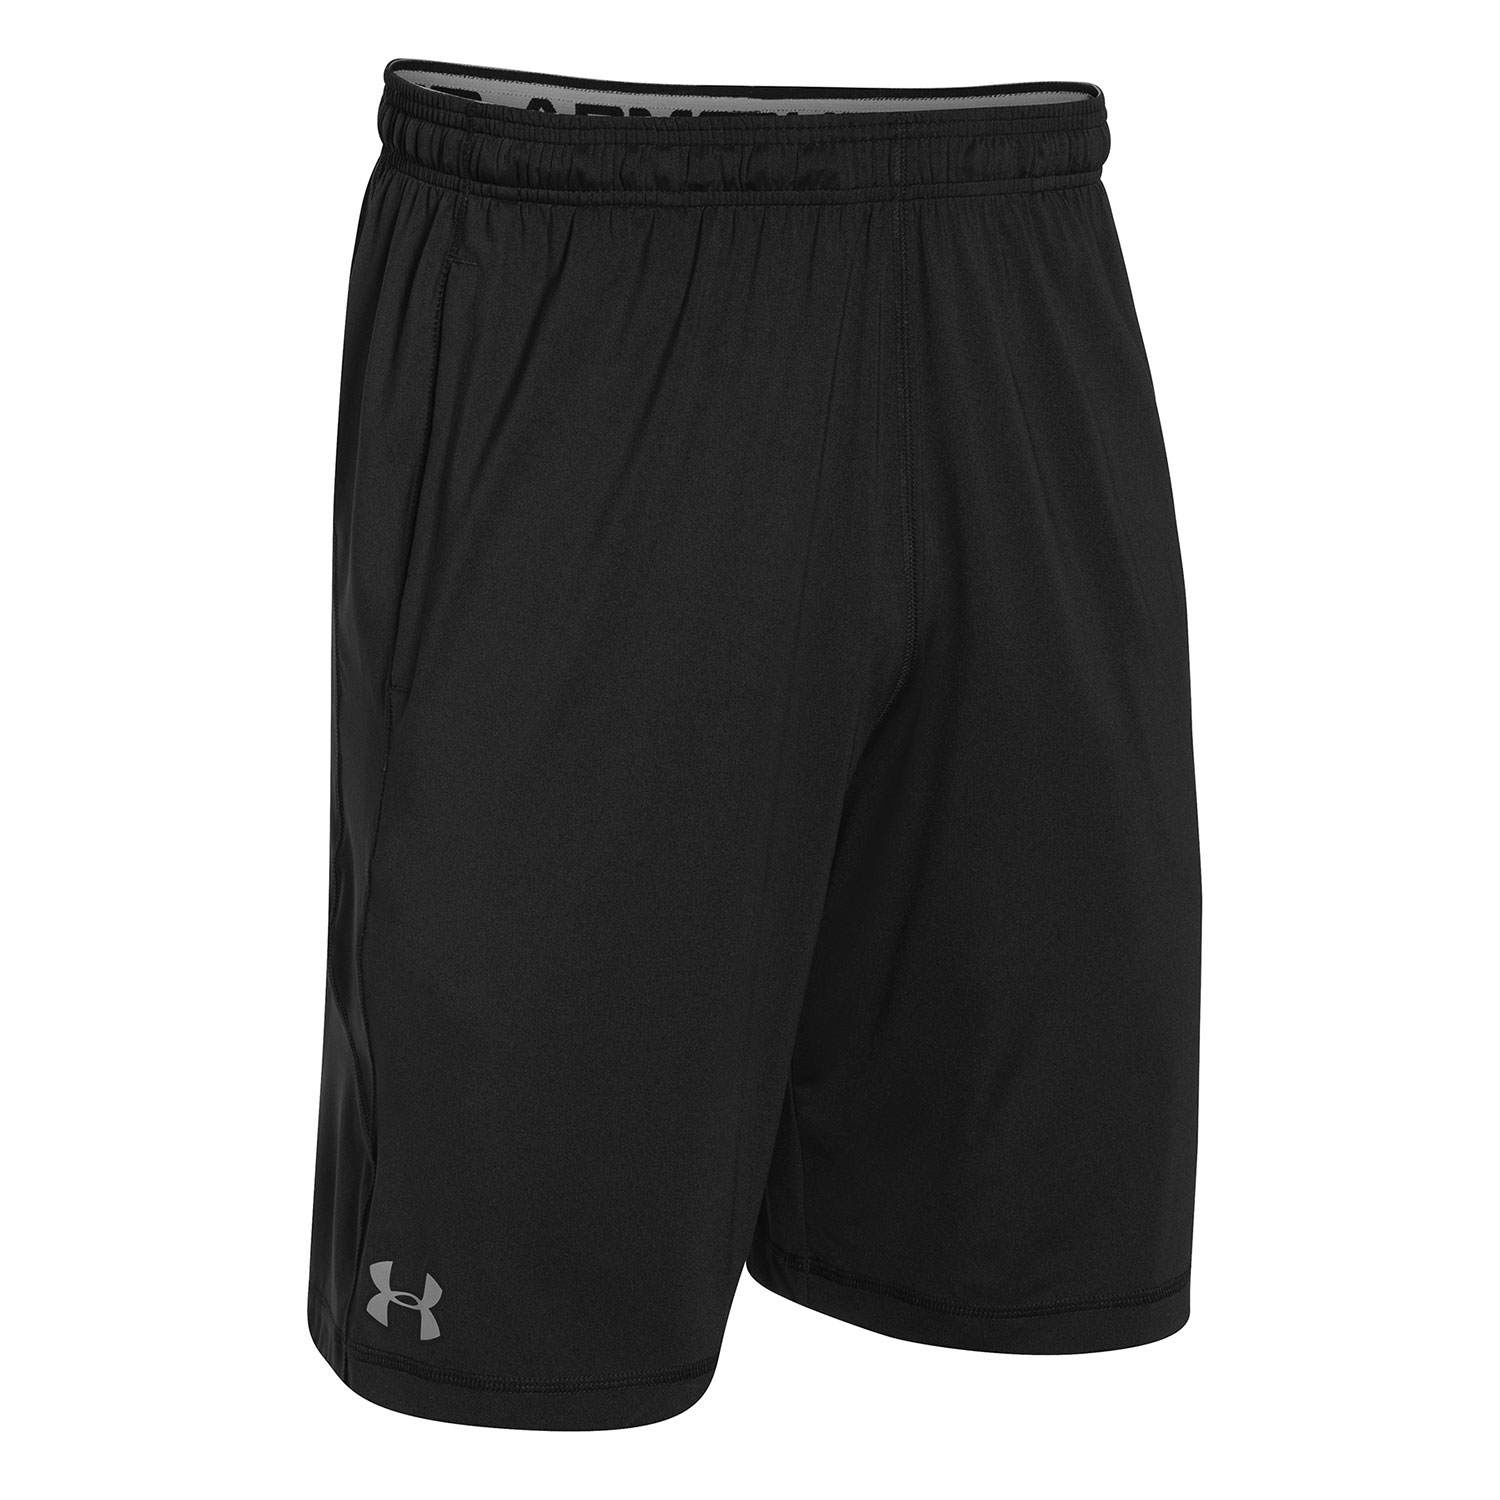 "Under Armour Men's Raid Shorts w/ 10"" Inseam"